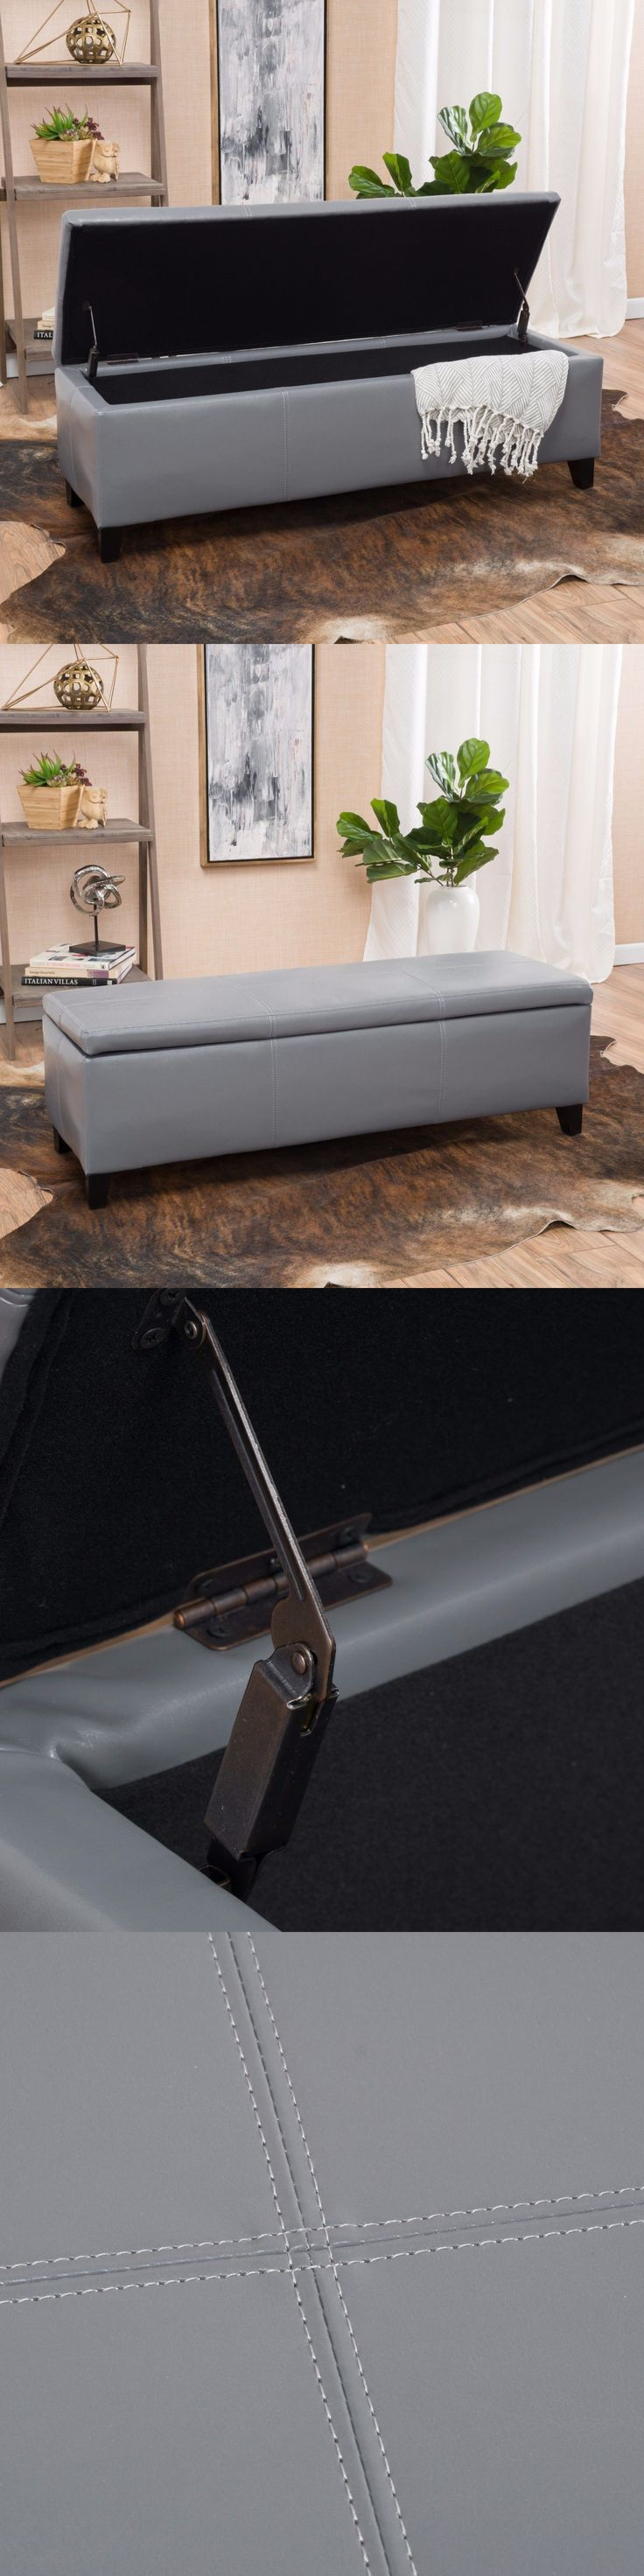 Ottomans Footstools and Poufs 20490: Contemporary Grey Leather Storage Ottoman Bench -> BUY IT NOW ONLY: $85.99 on eBay!